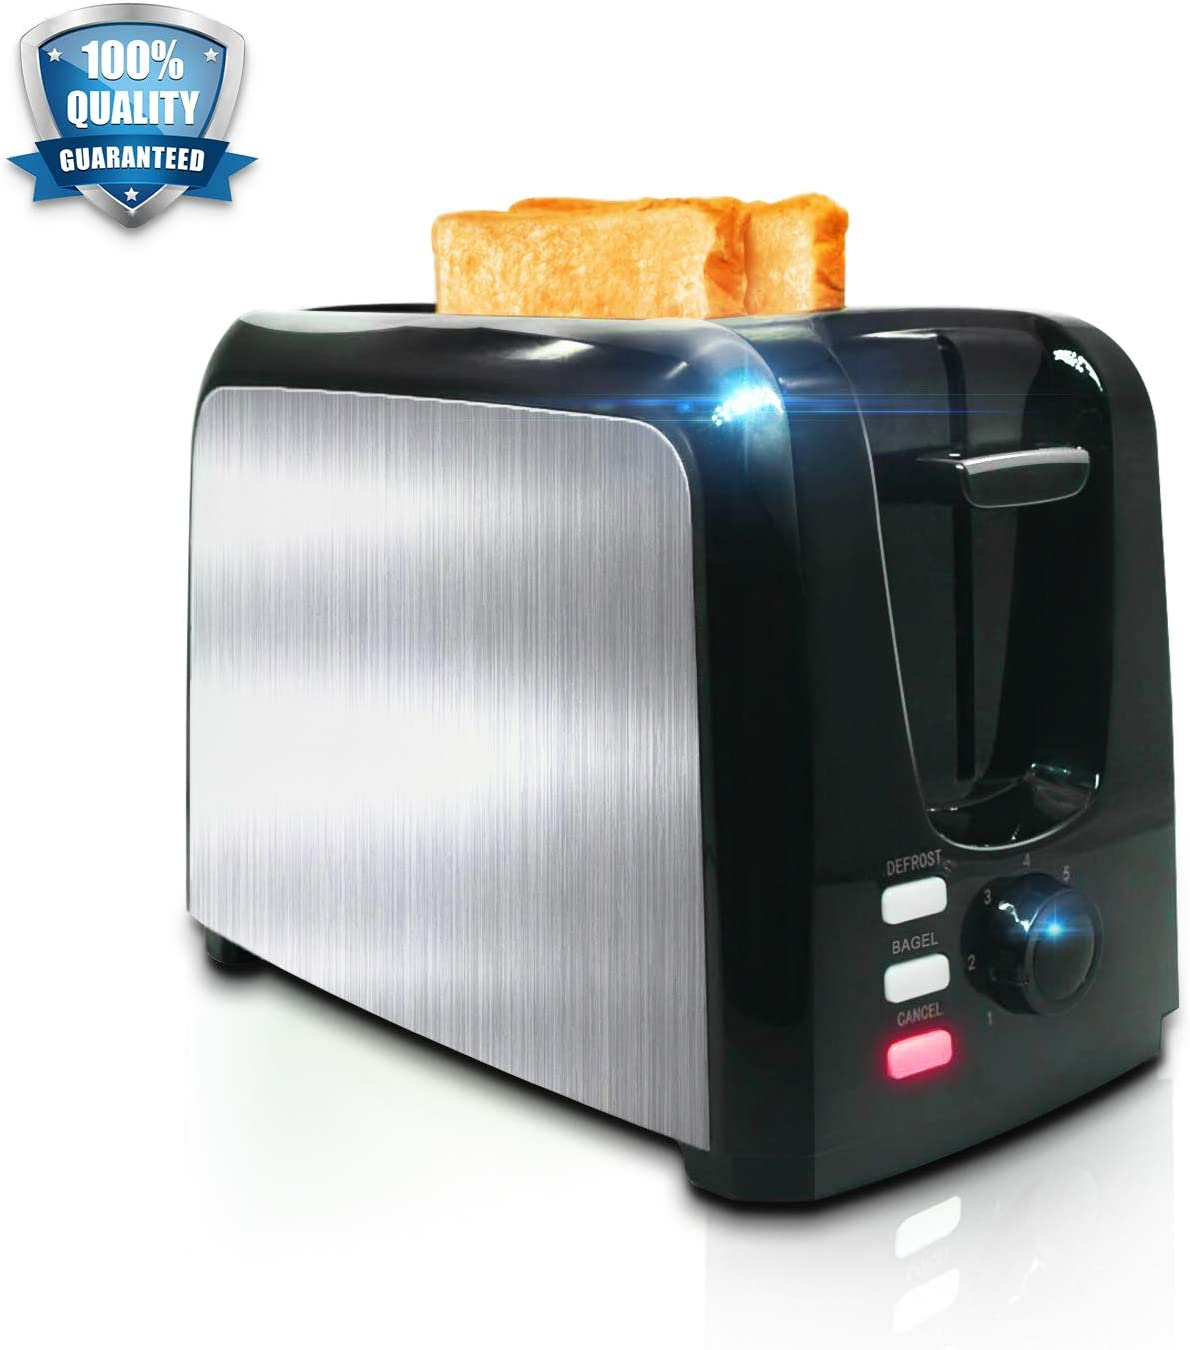 Toaster 2 Slice Toasters Toast Perfectly Stainless Steel 2 Slice Toaster With Bagel Defrost Cancel Function Cool Touch Black Compact Bread Toasters 2 Slice Best Rated Prime Top With Two Extra Wide Slots, 7 Shade Setting, Removable Crumb Tray